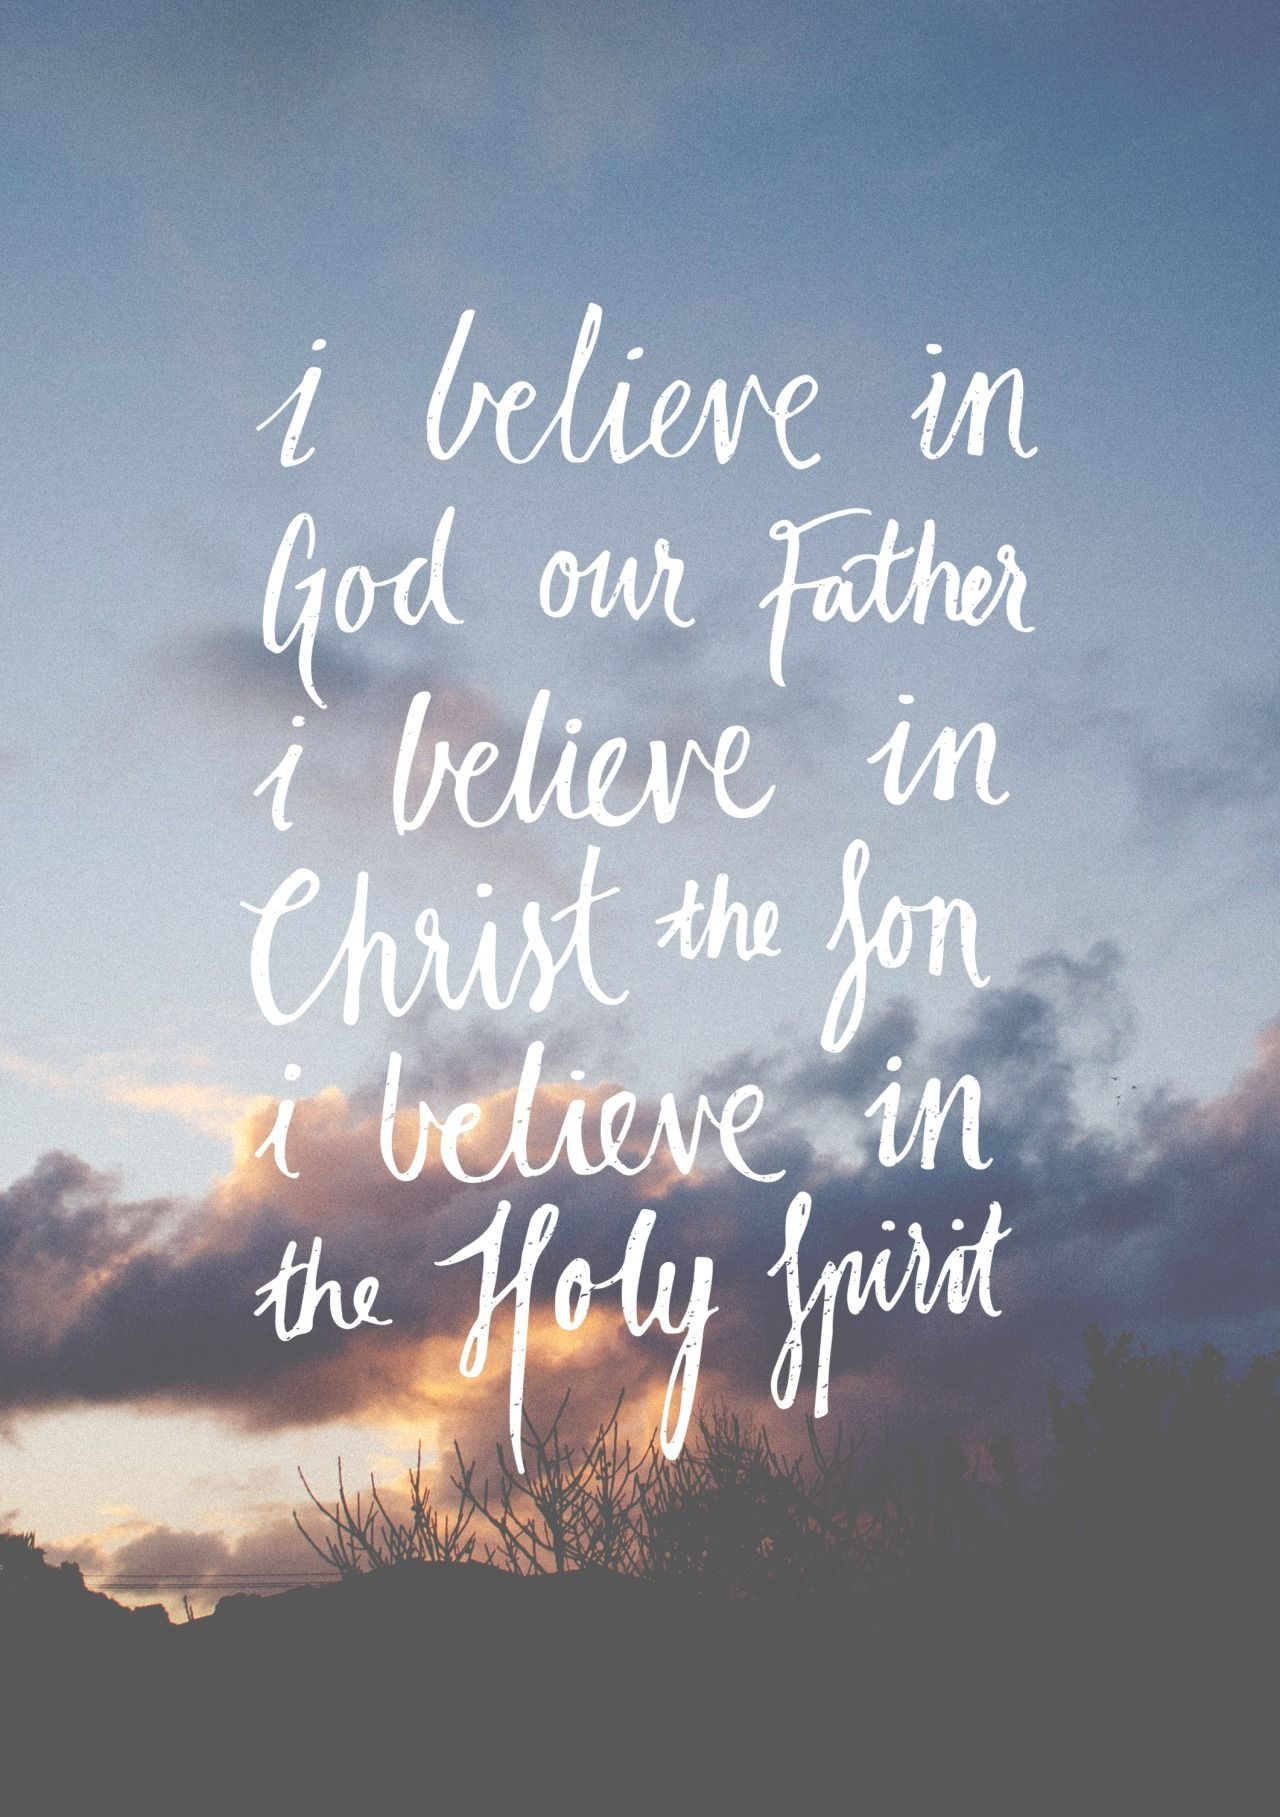 Quote About God Hillsong Worship  I Believe  God Thoughts  Pinterest  Lord